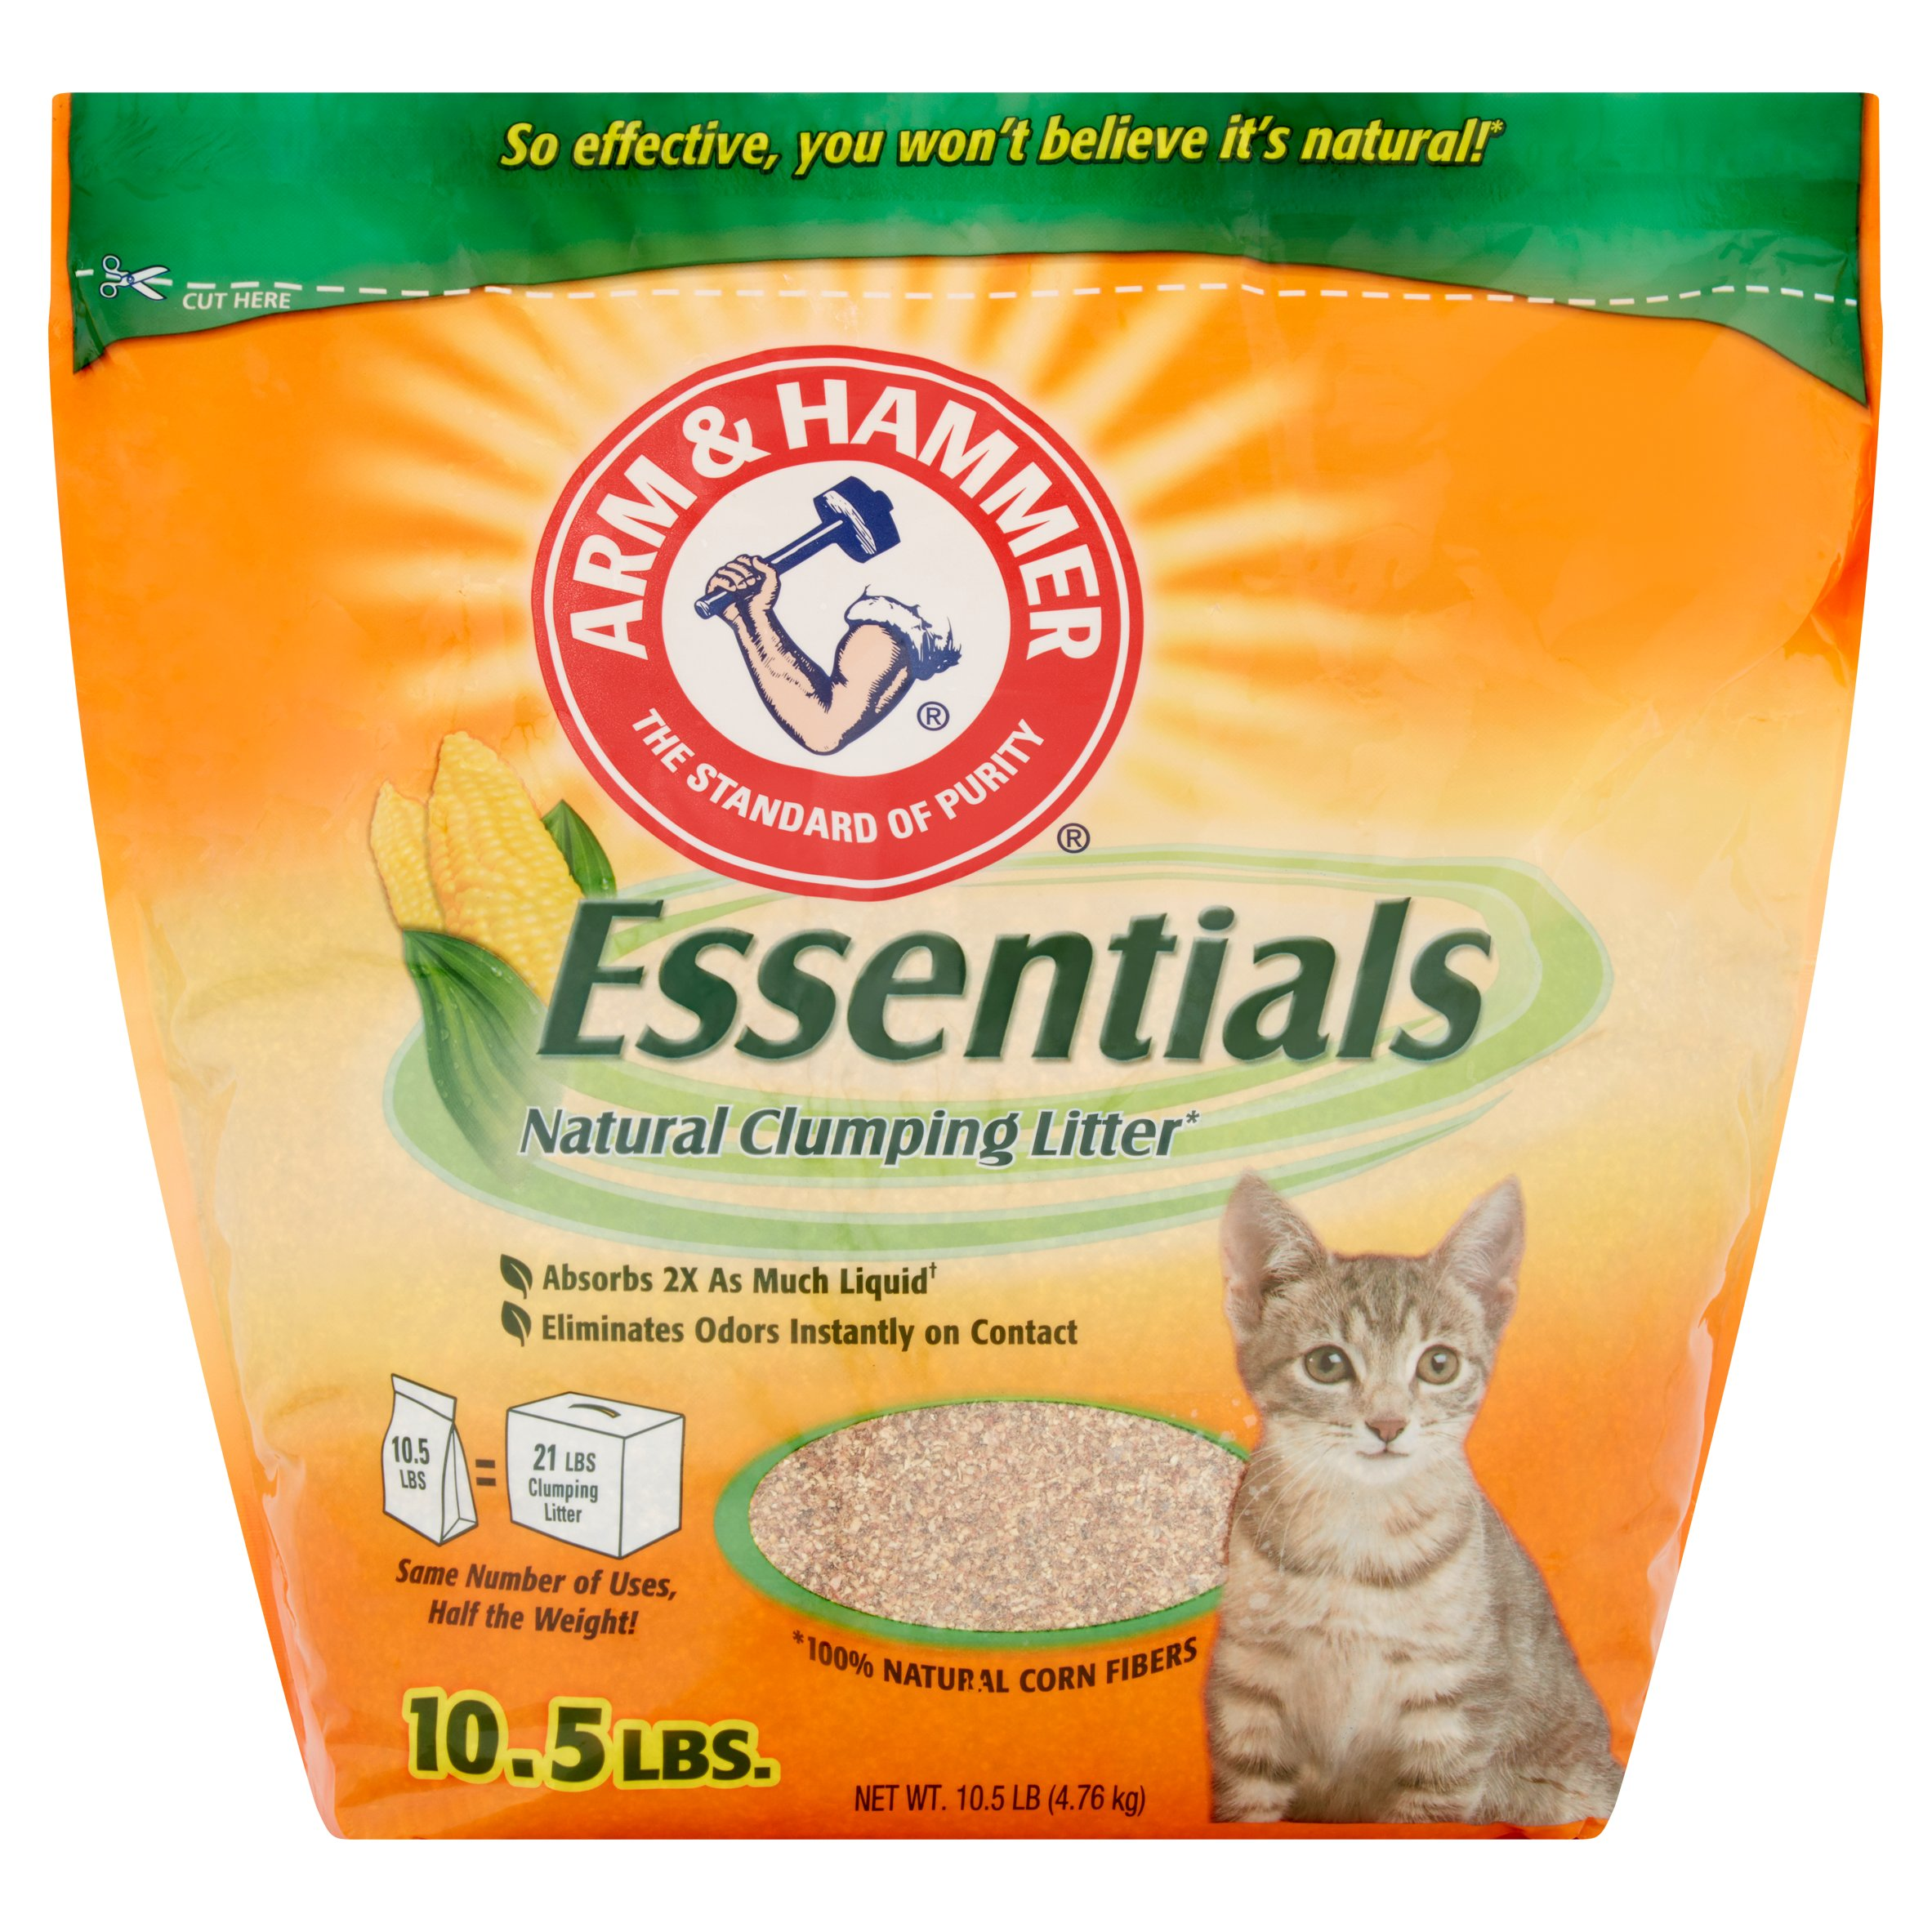 Arm & Hammer Essentials Cat Food, 10.5 Lbs